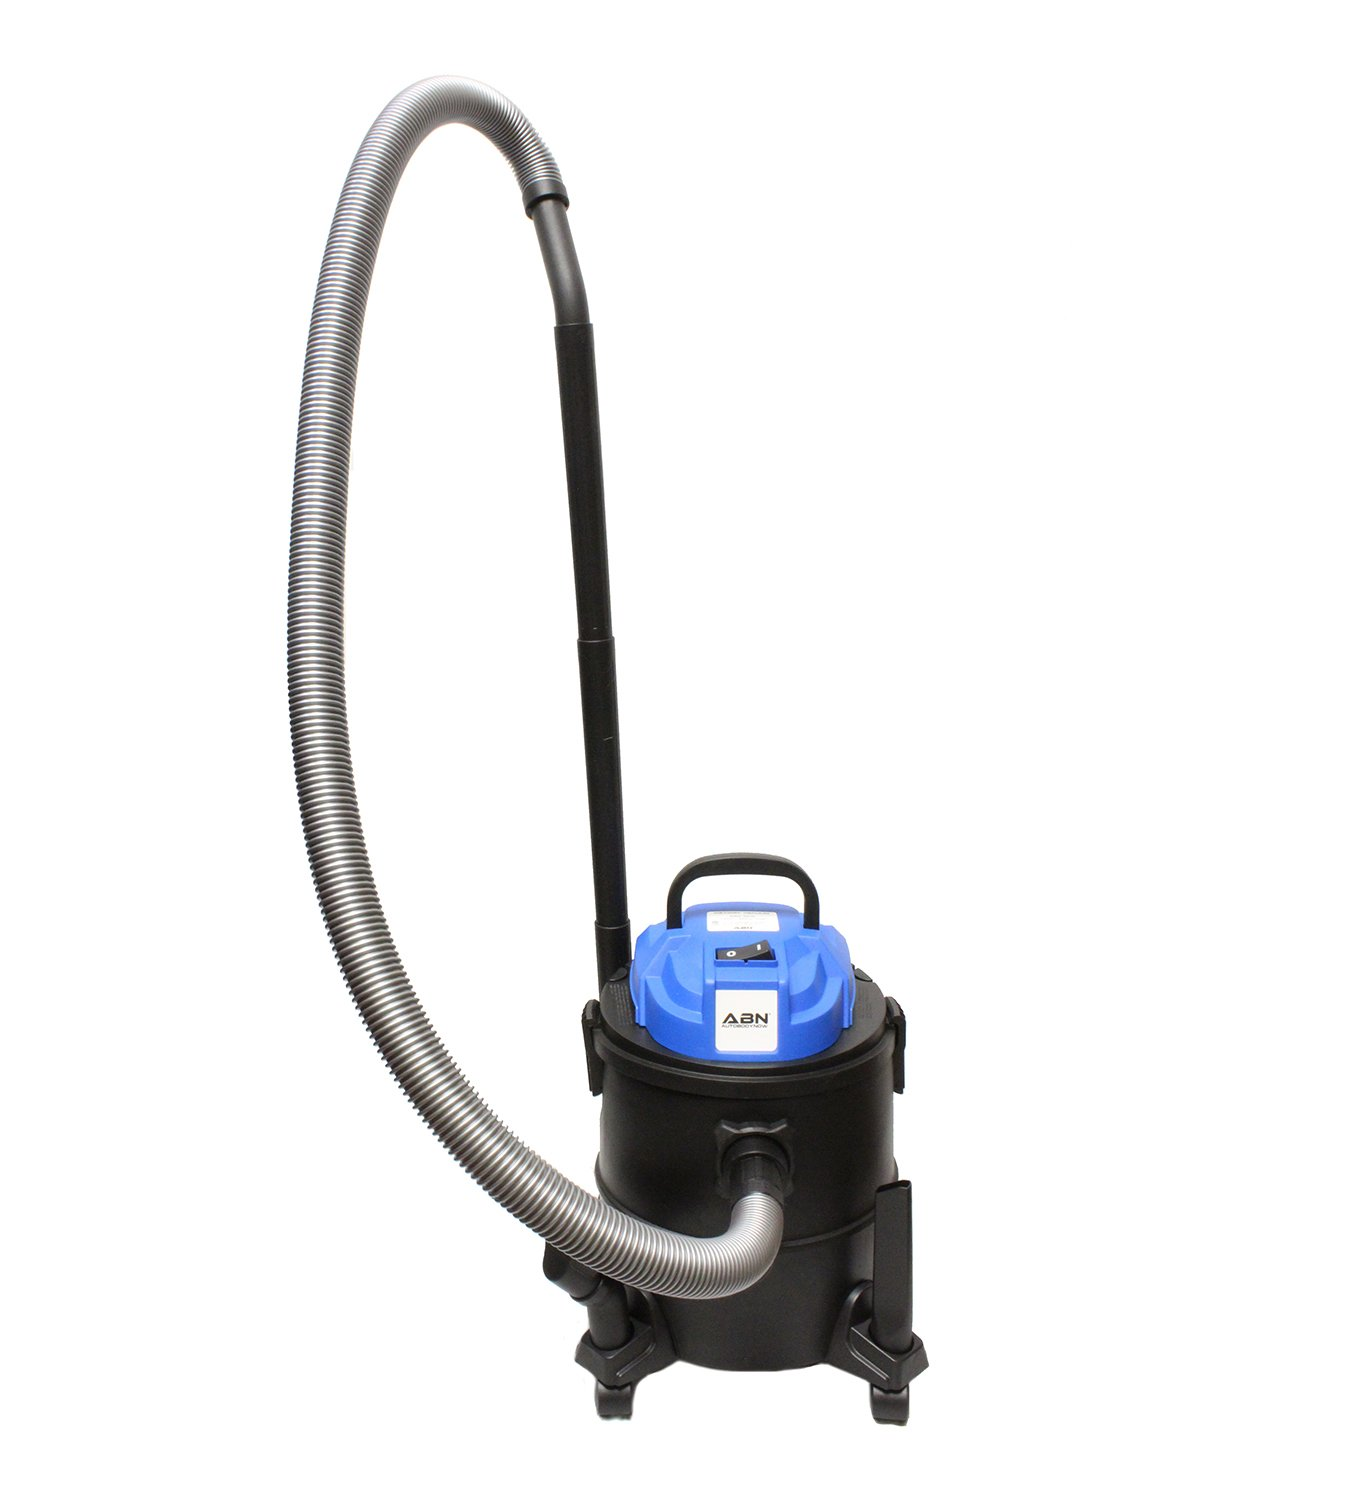 ABN Electric Wet Dry Shop Vacuum Cleaner in Blue with Accessories, 5.3 Gallon – Automotive Garage, Car, Vac Blower Kit